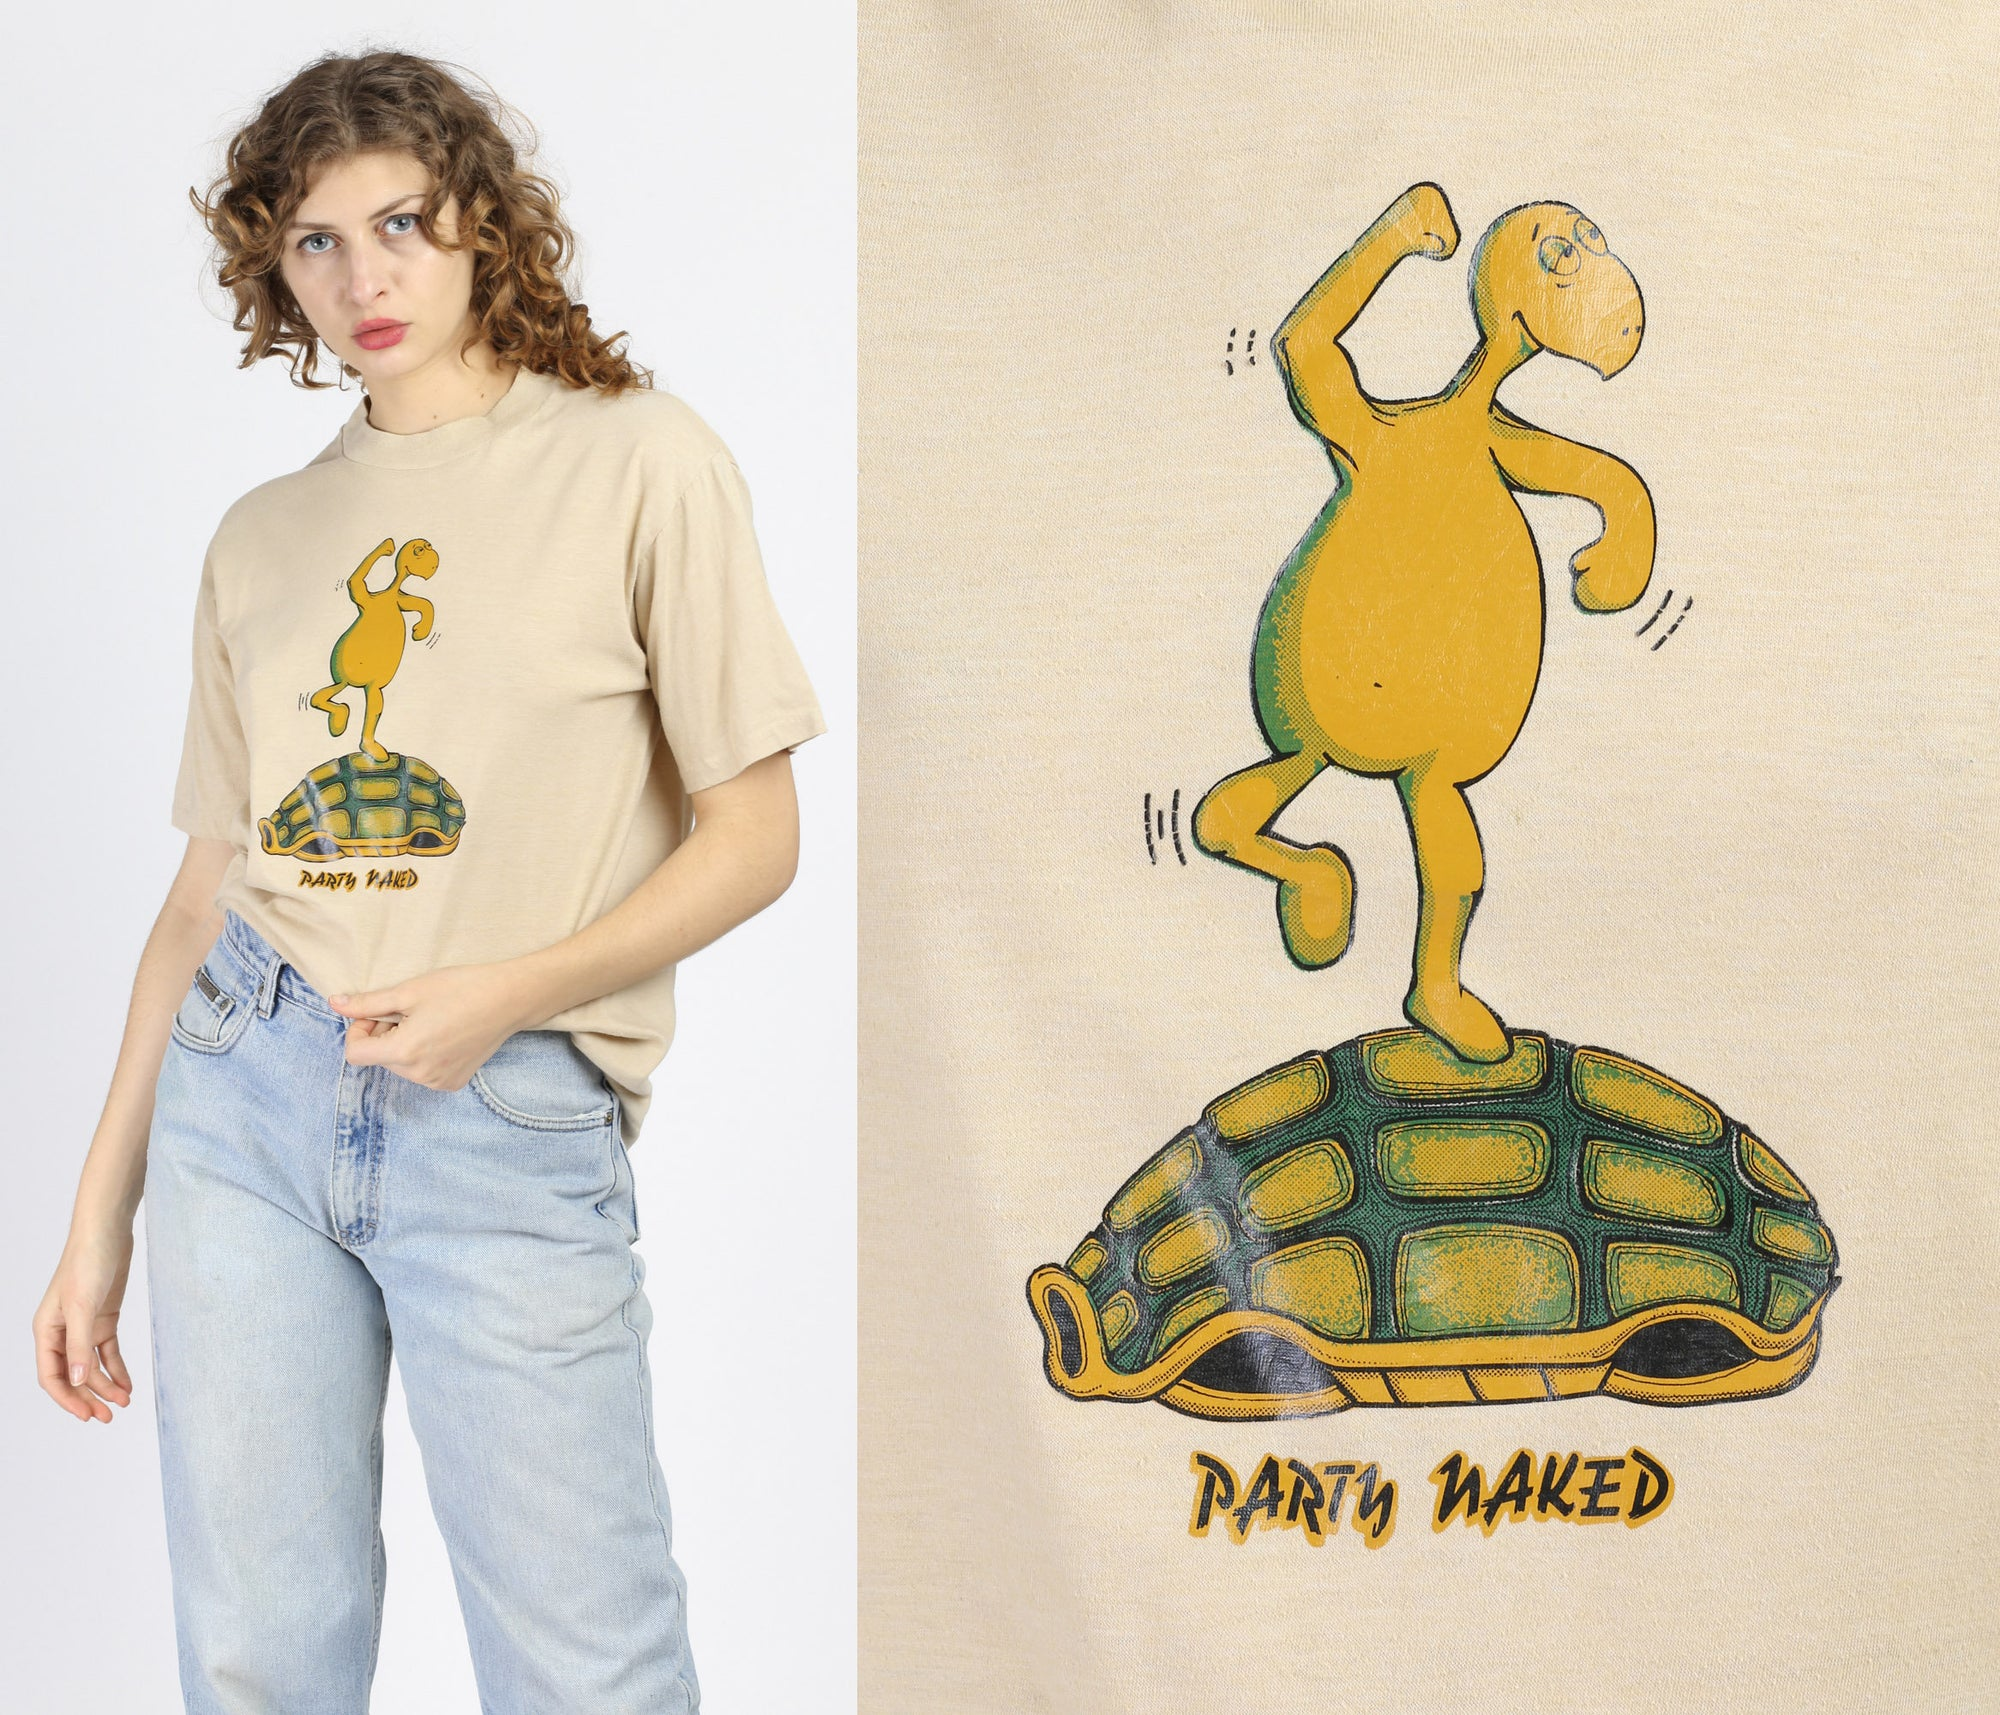 80s Party Naked Tortoise Graphic Tee - Extra Large